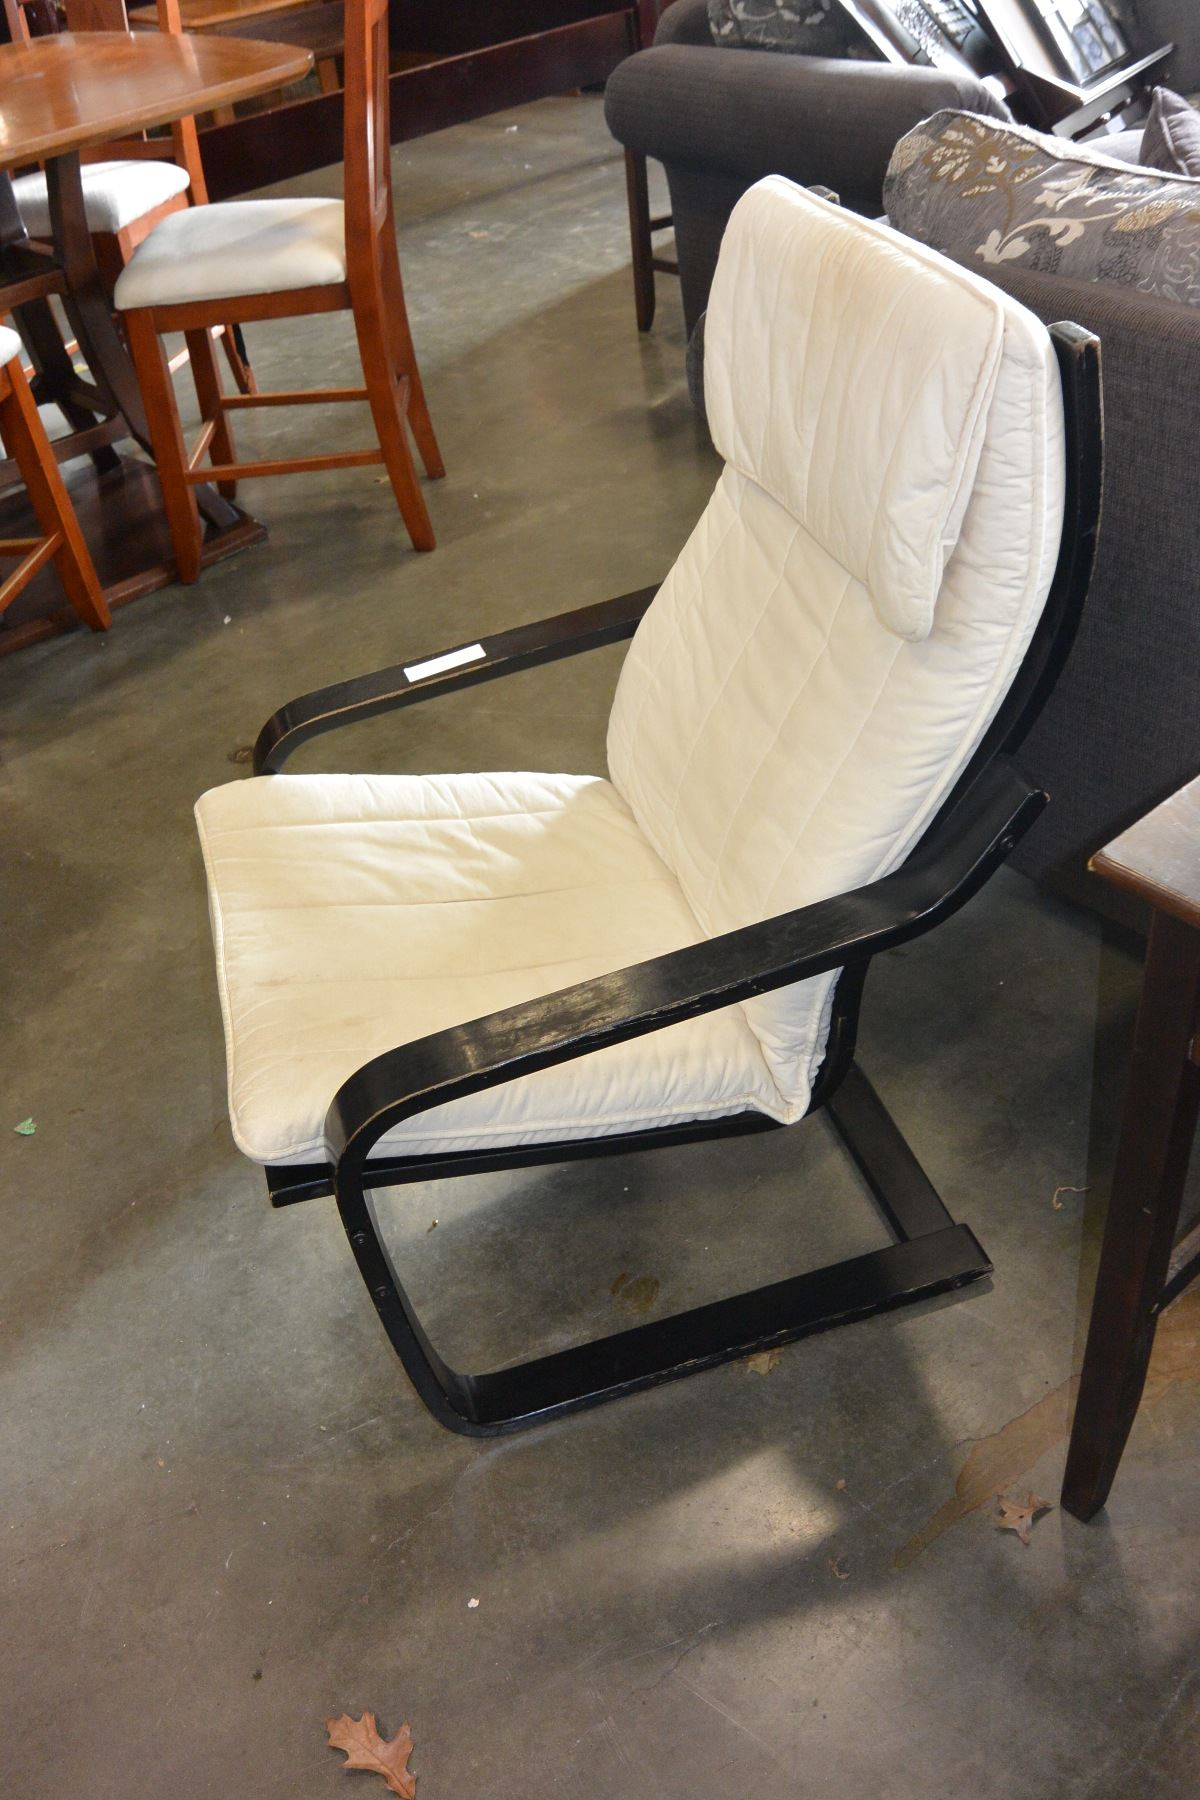 Bentwood ikea chair - Bentwood chairs ikea ...